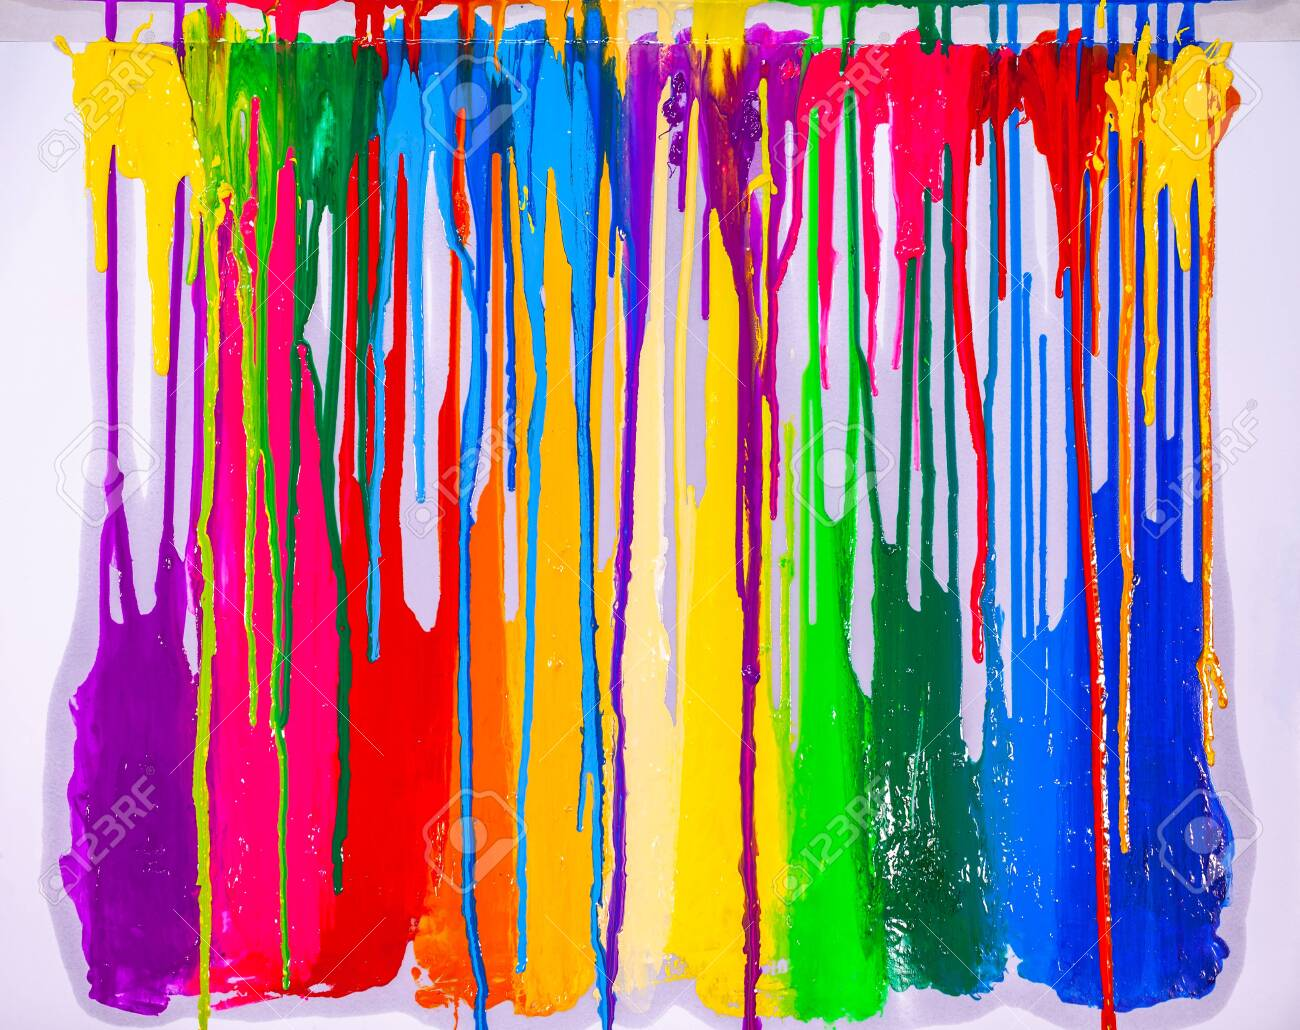 colorful of screen printing ink are dripping on white background - 149909859